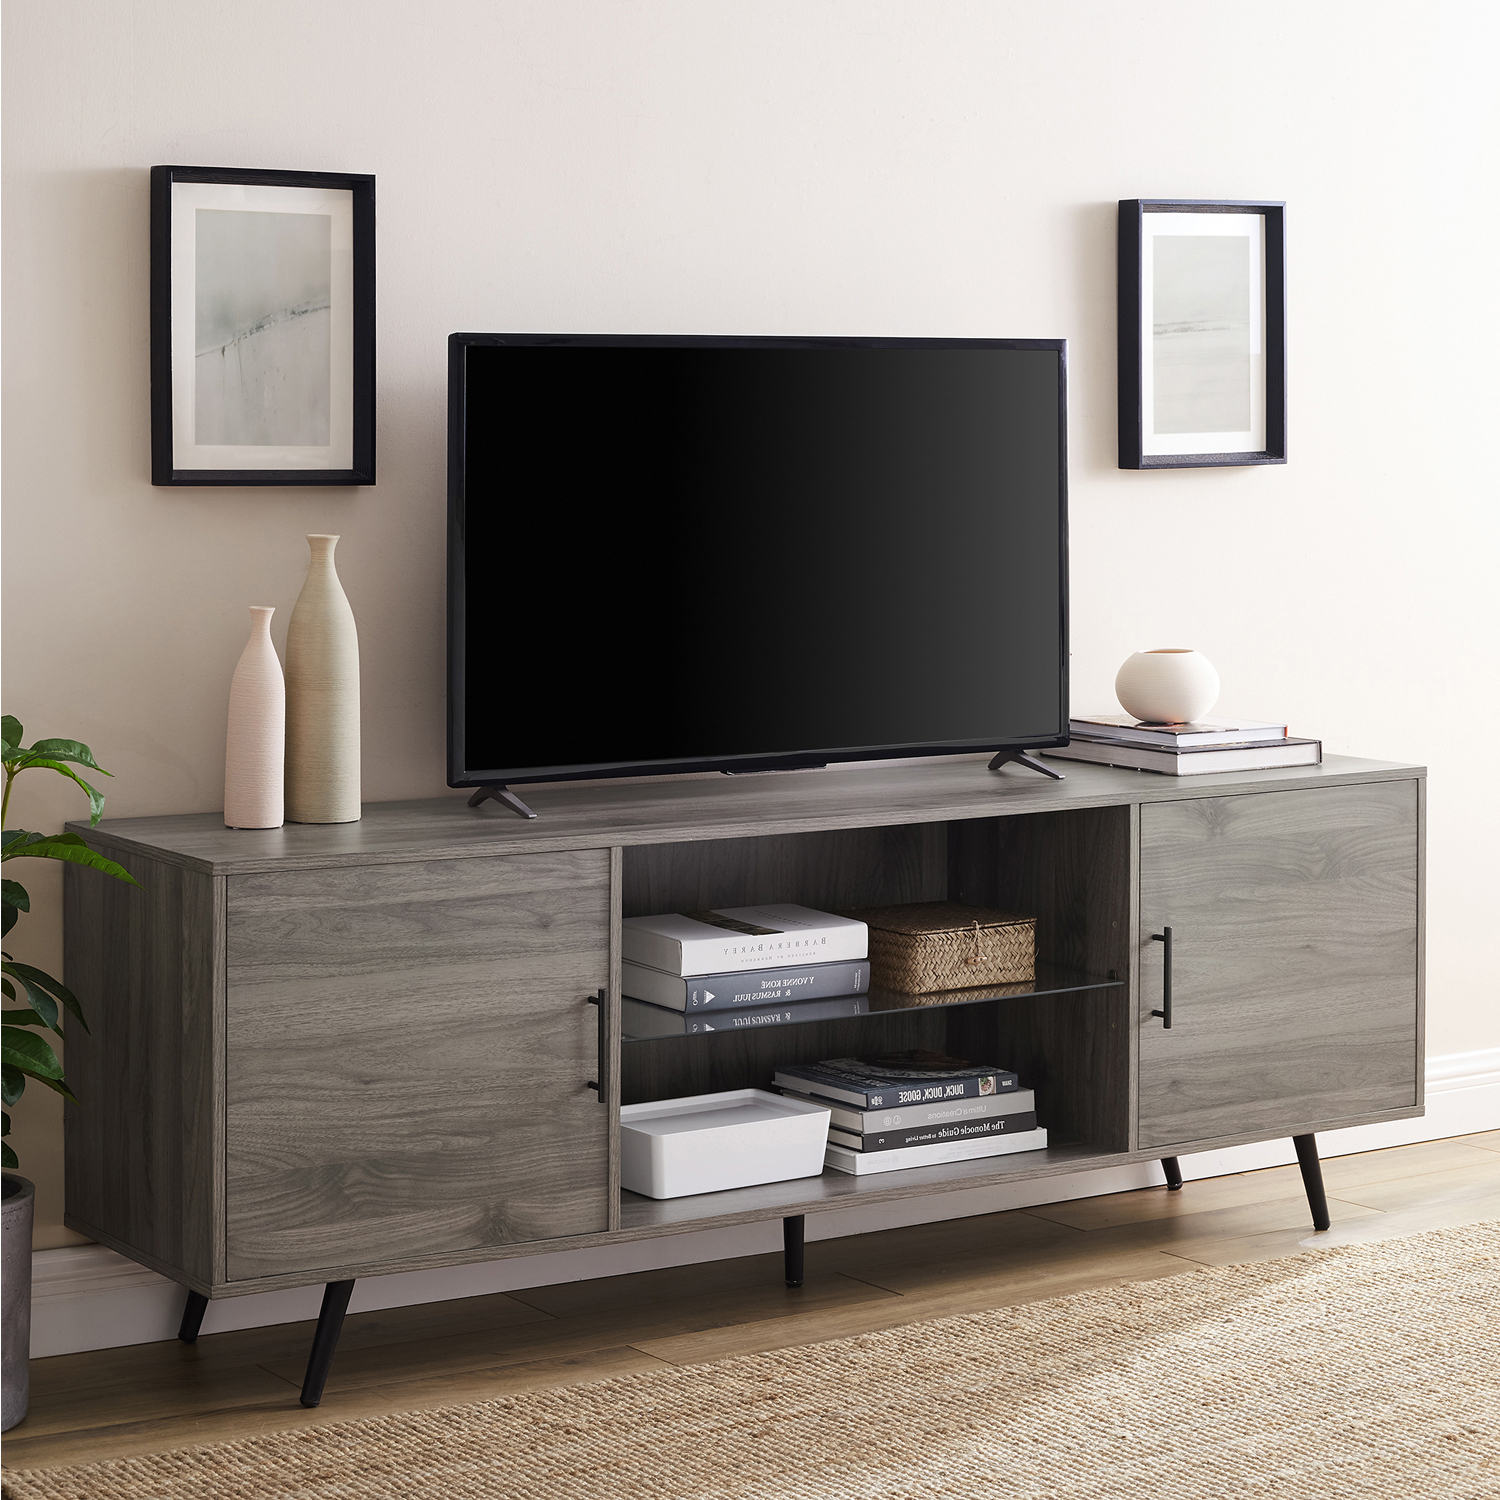 Copen Wide Tv Stands Within 2018 Wide Tv Stand With Glass Shelf – Pier (View 4 of 10)